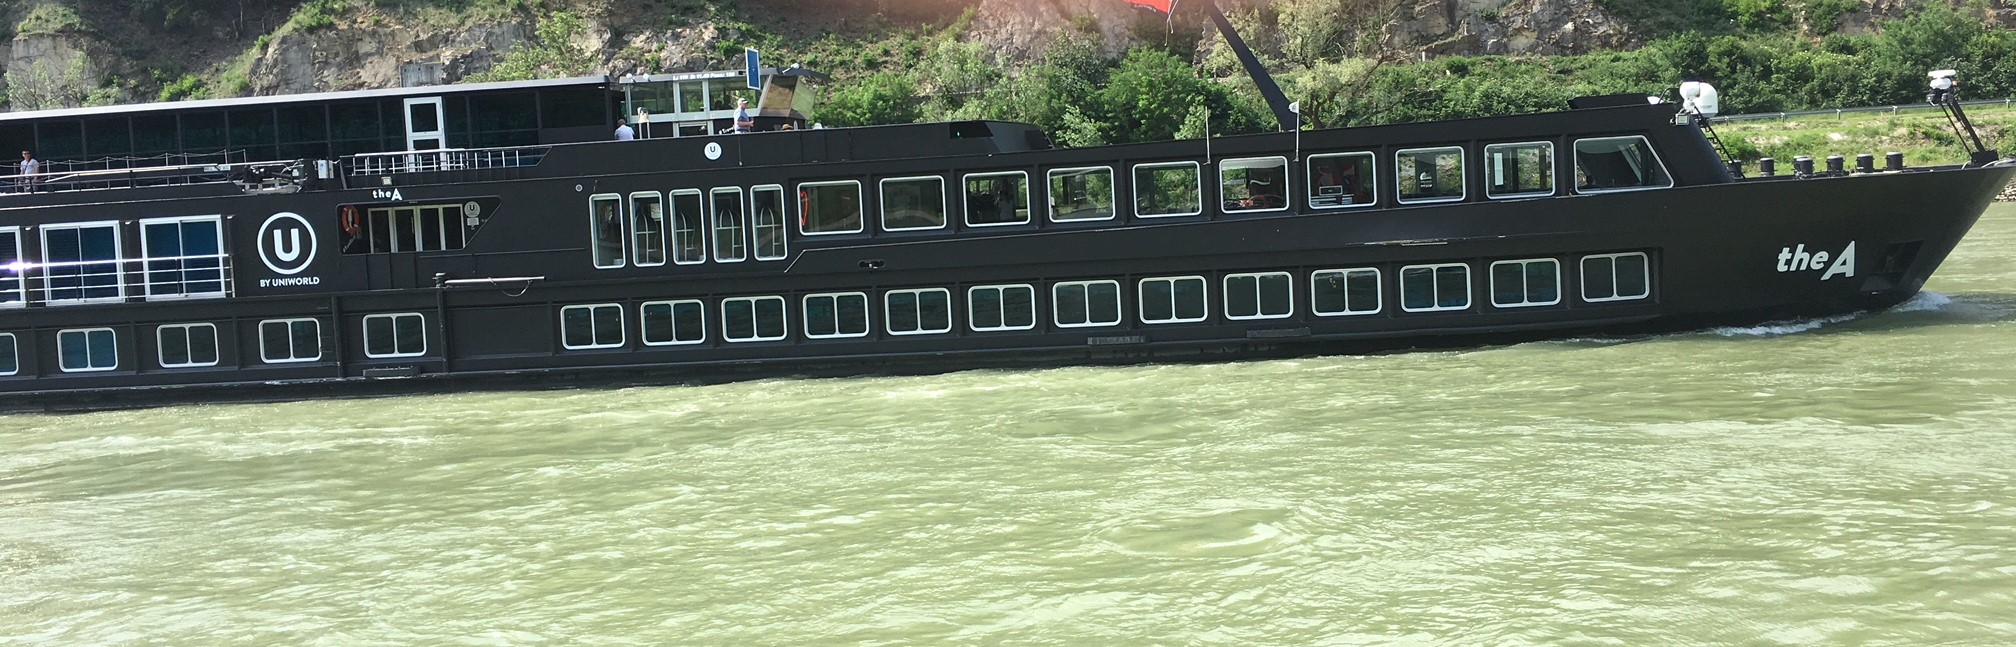 The A by Uniworld—a Europe river cruise for the younger crowd!